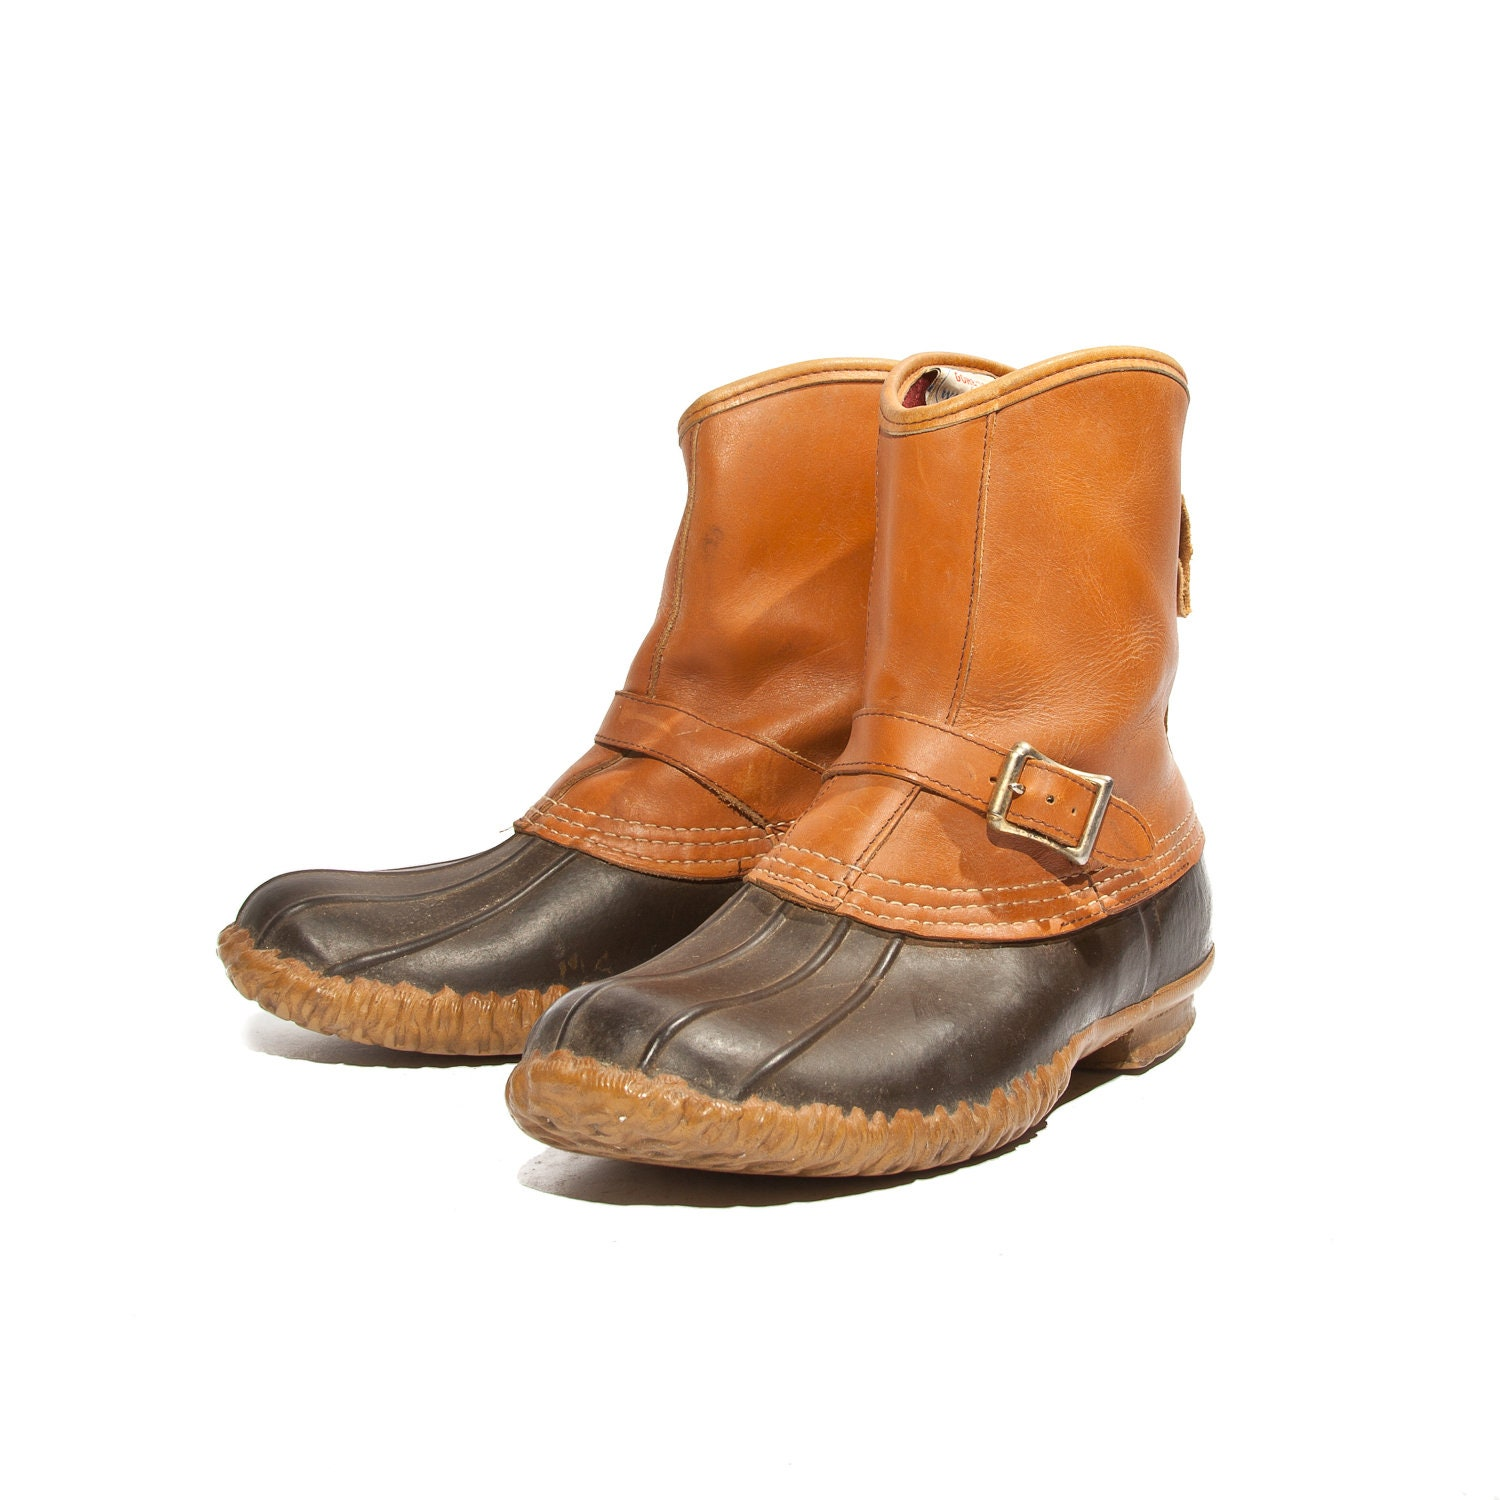 Men S L L Bean Lounger Boots Strap And Buckle Bean Boots